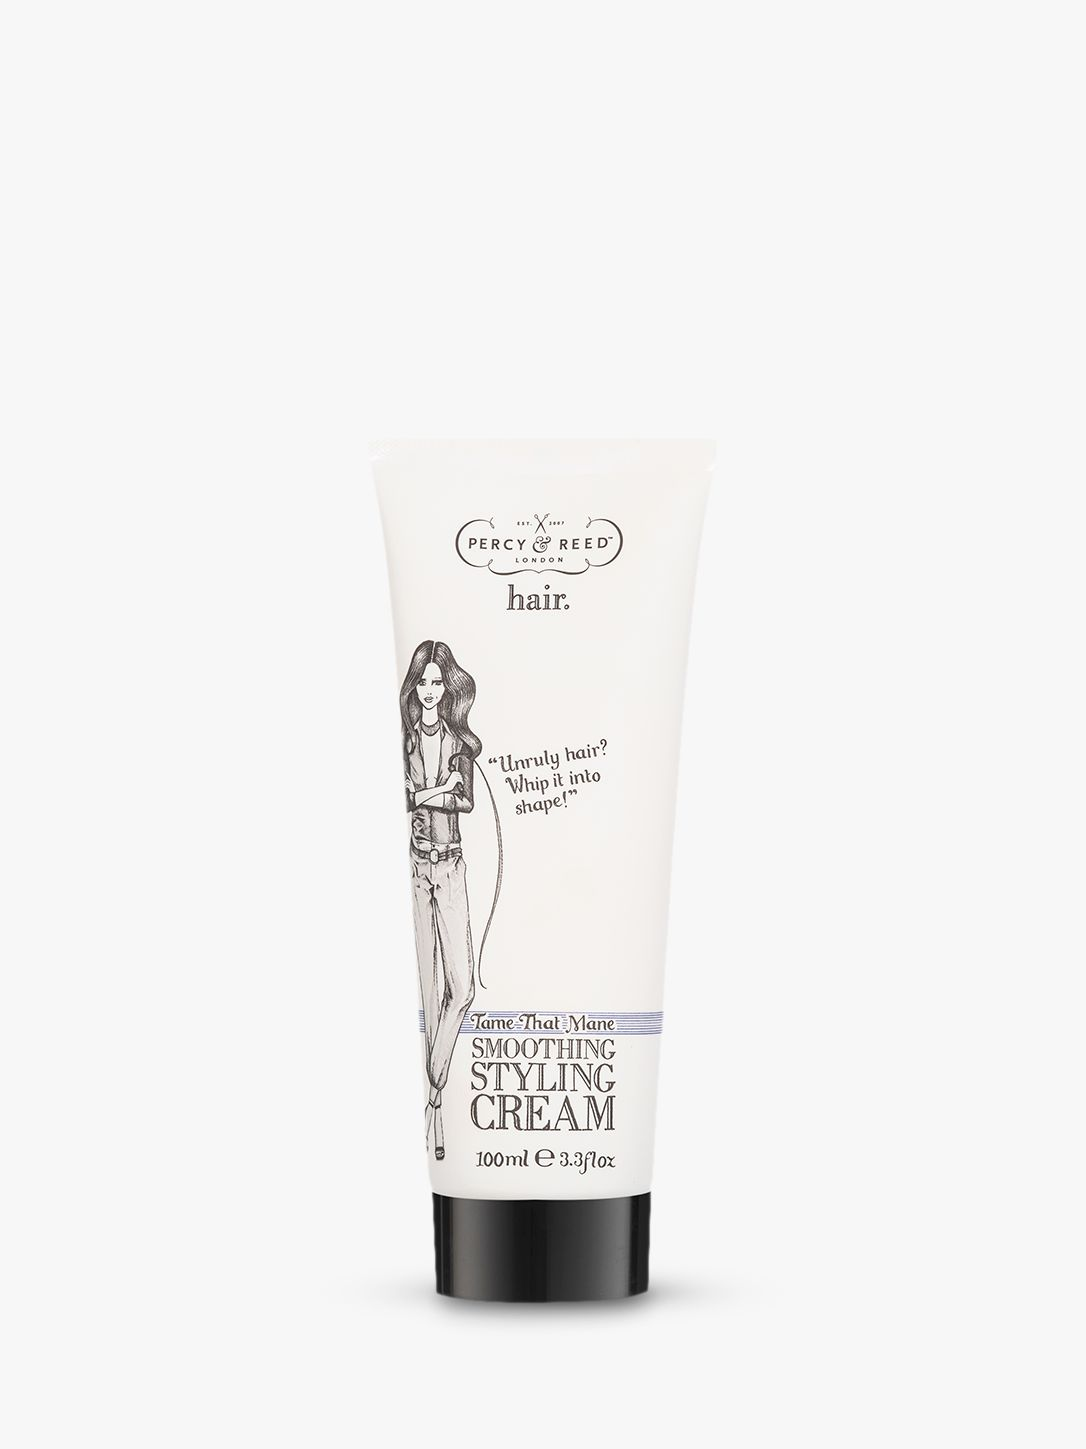 Percy & Reed Percy & Reed Tame That Mane Smoothing Styling Cream, 100ml